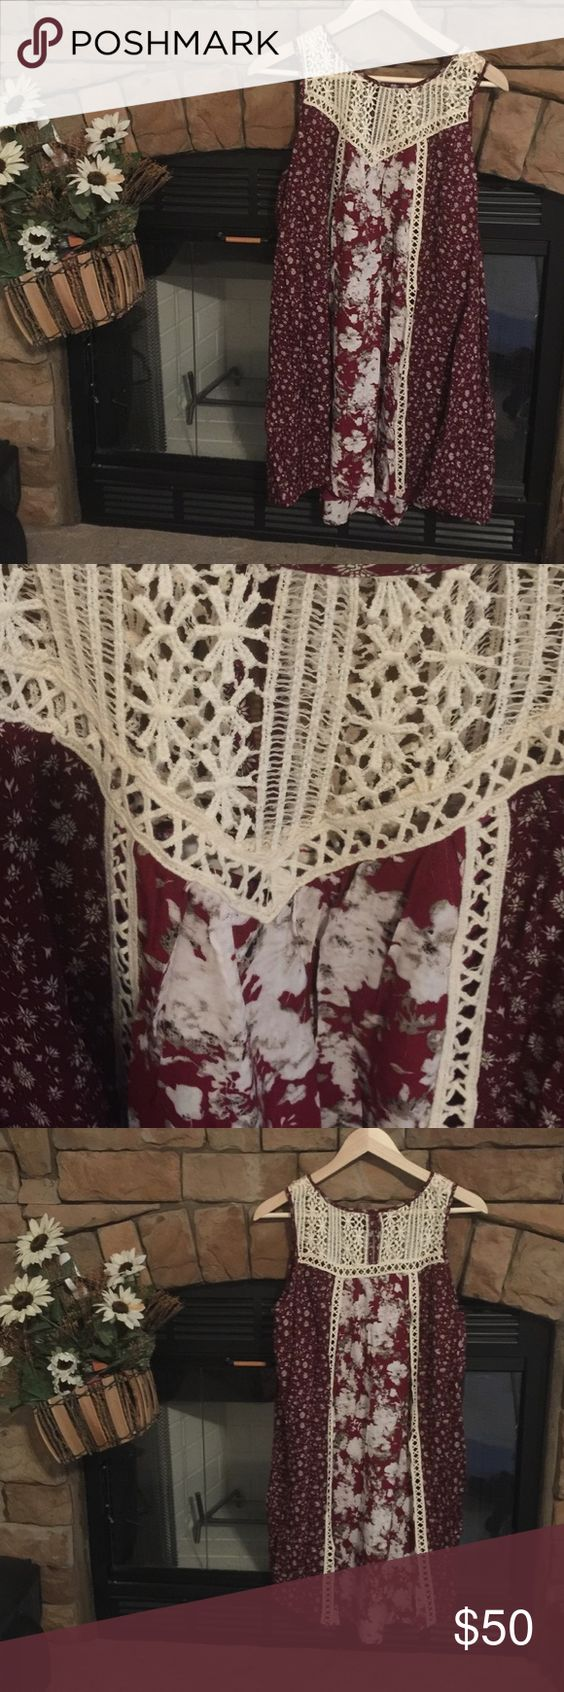 maroon floral print dressboutique maroon floral print dress has a small high low effect great attention to detail